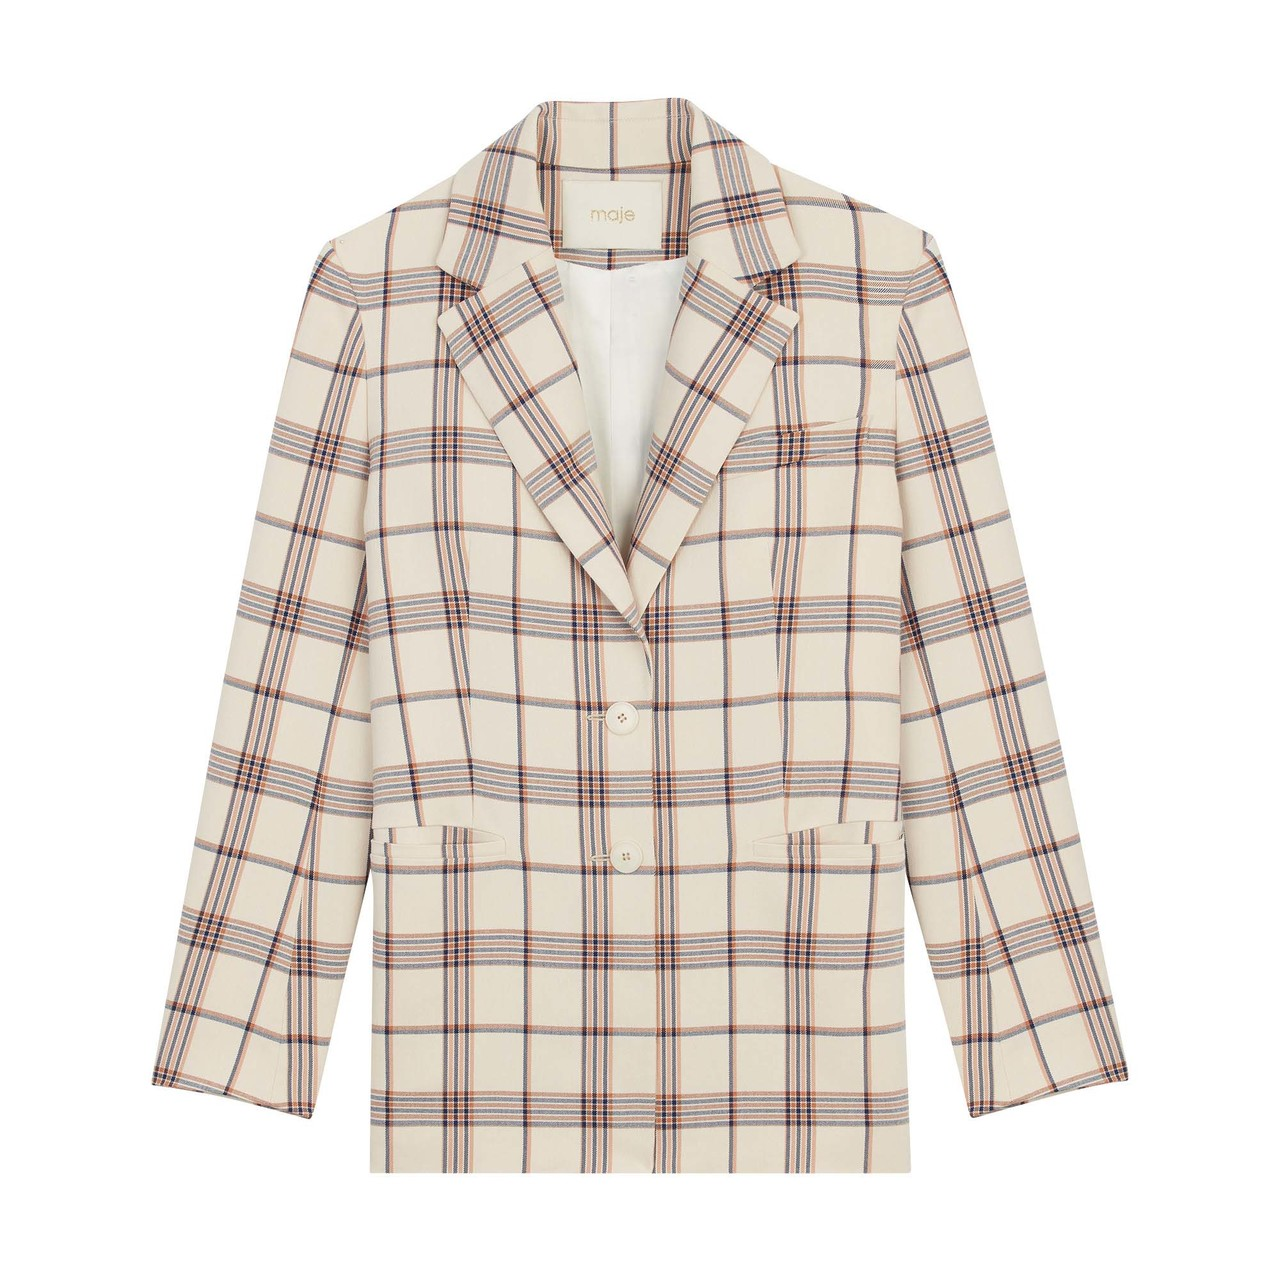 Tailored Jacket With Checks  - Check